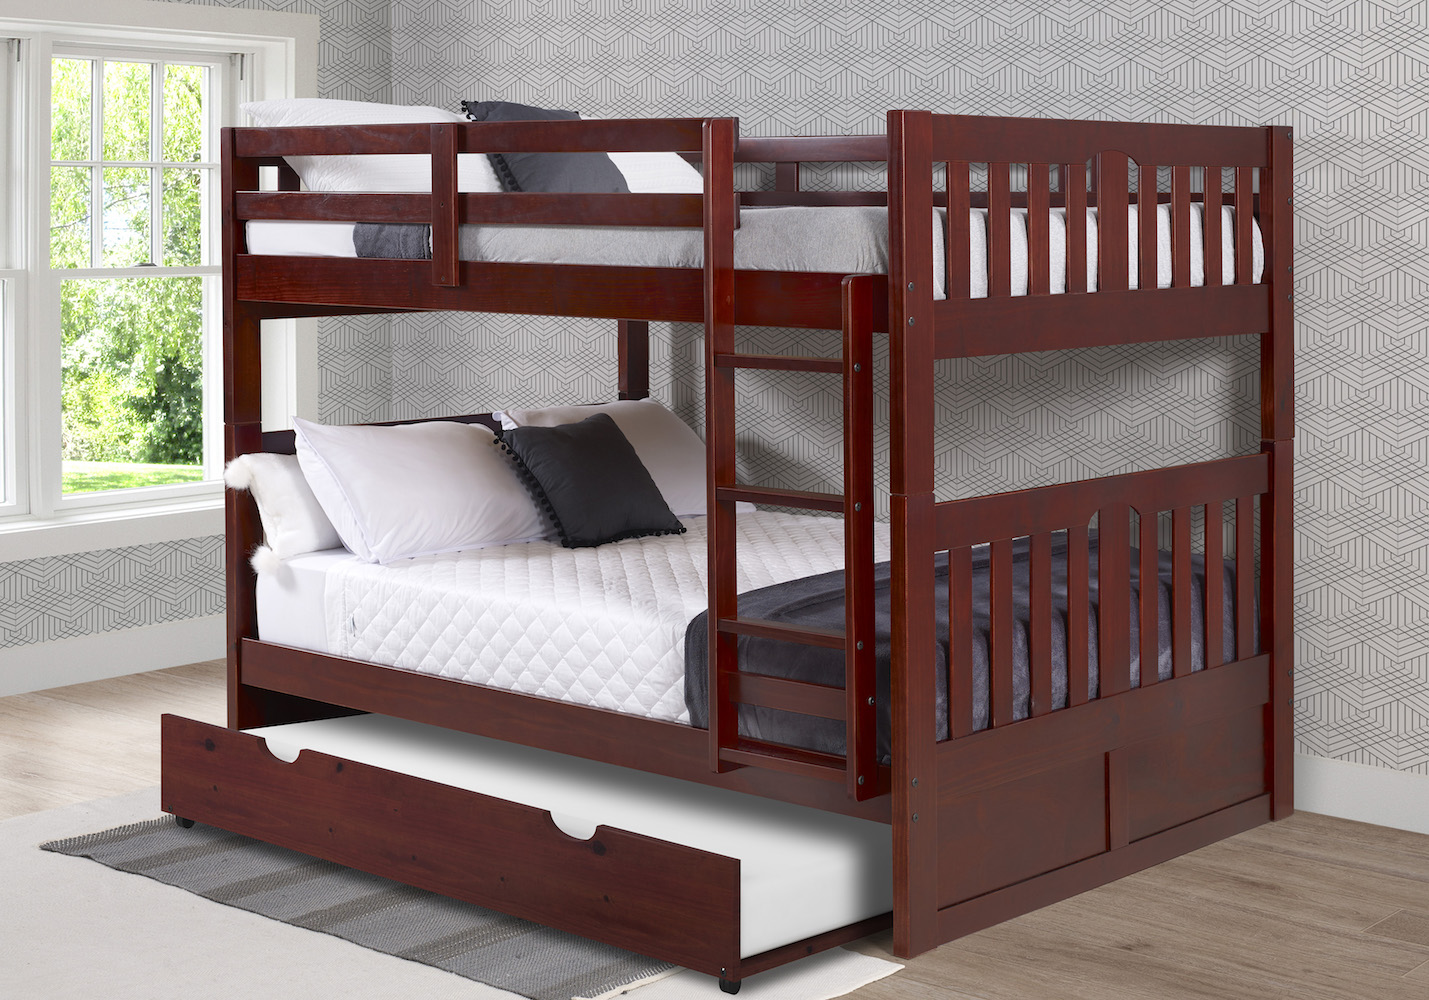 Donco Kids Furniture Bunkbed Twin Trundle Photo